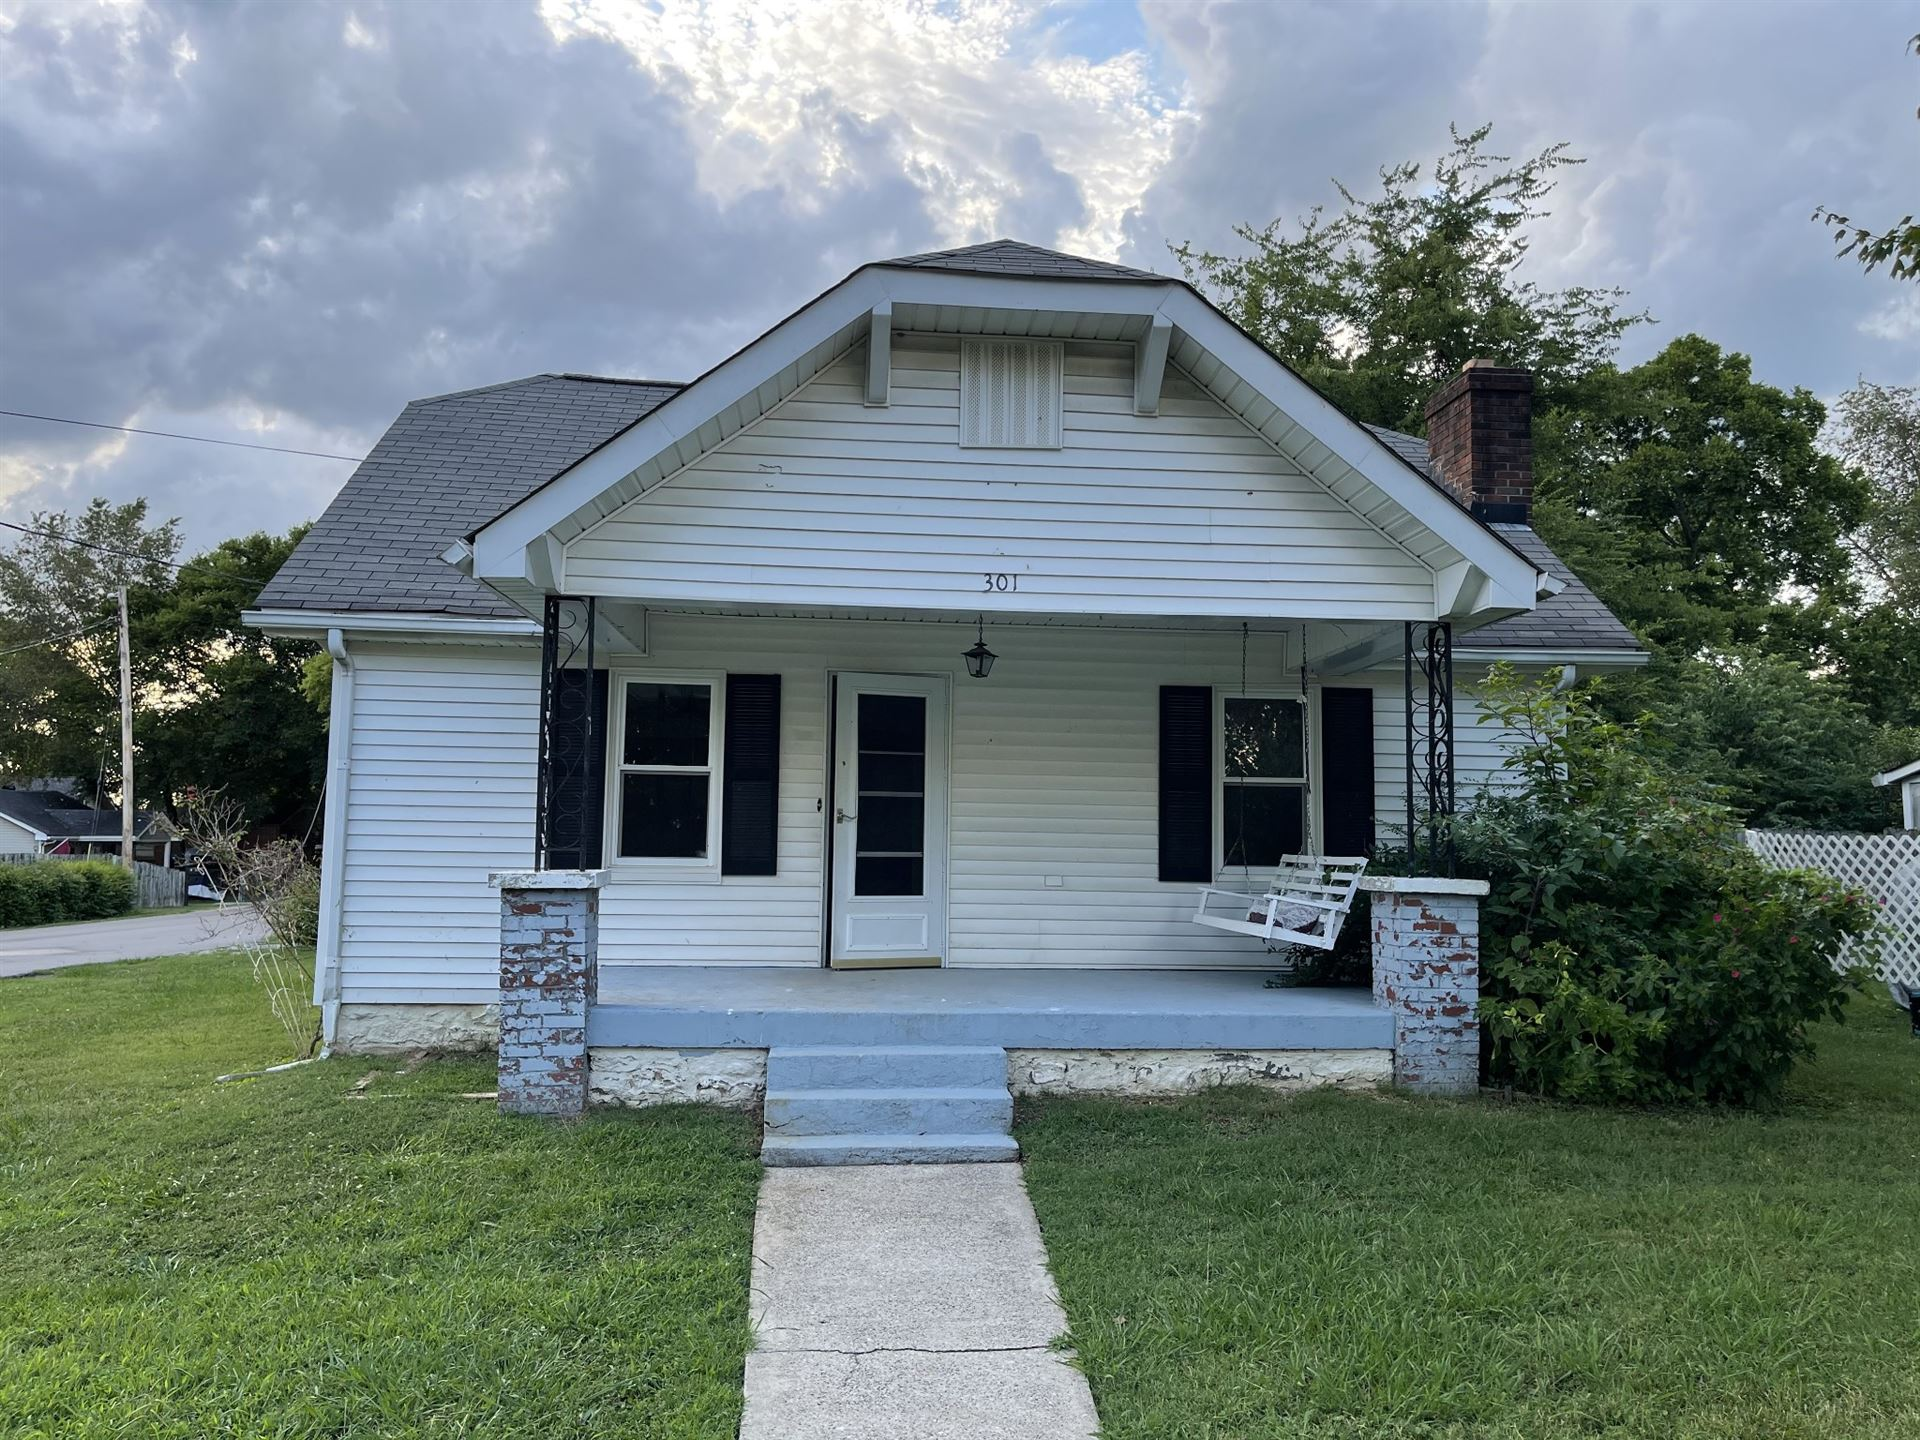 301 30th St, Old Hickory, TN 37138 - MLS#: 2279908